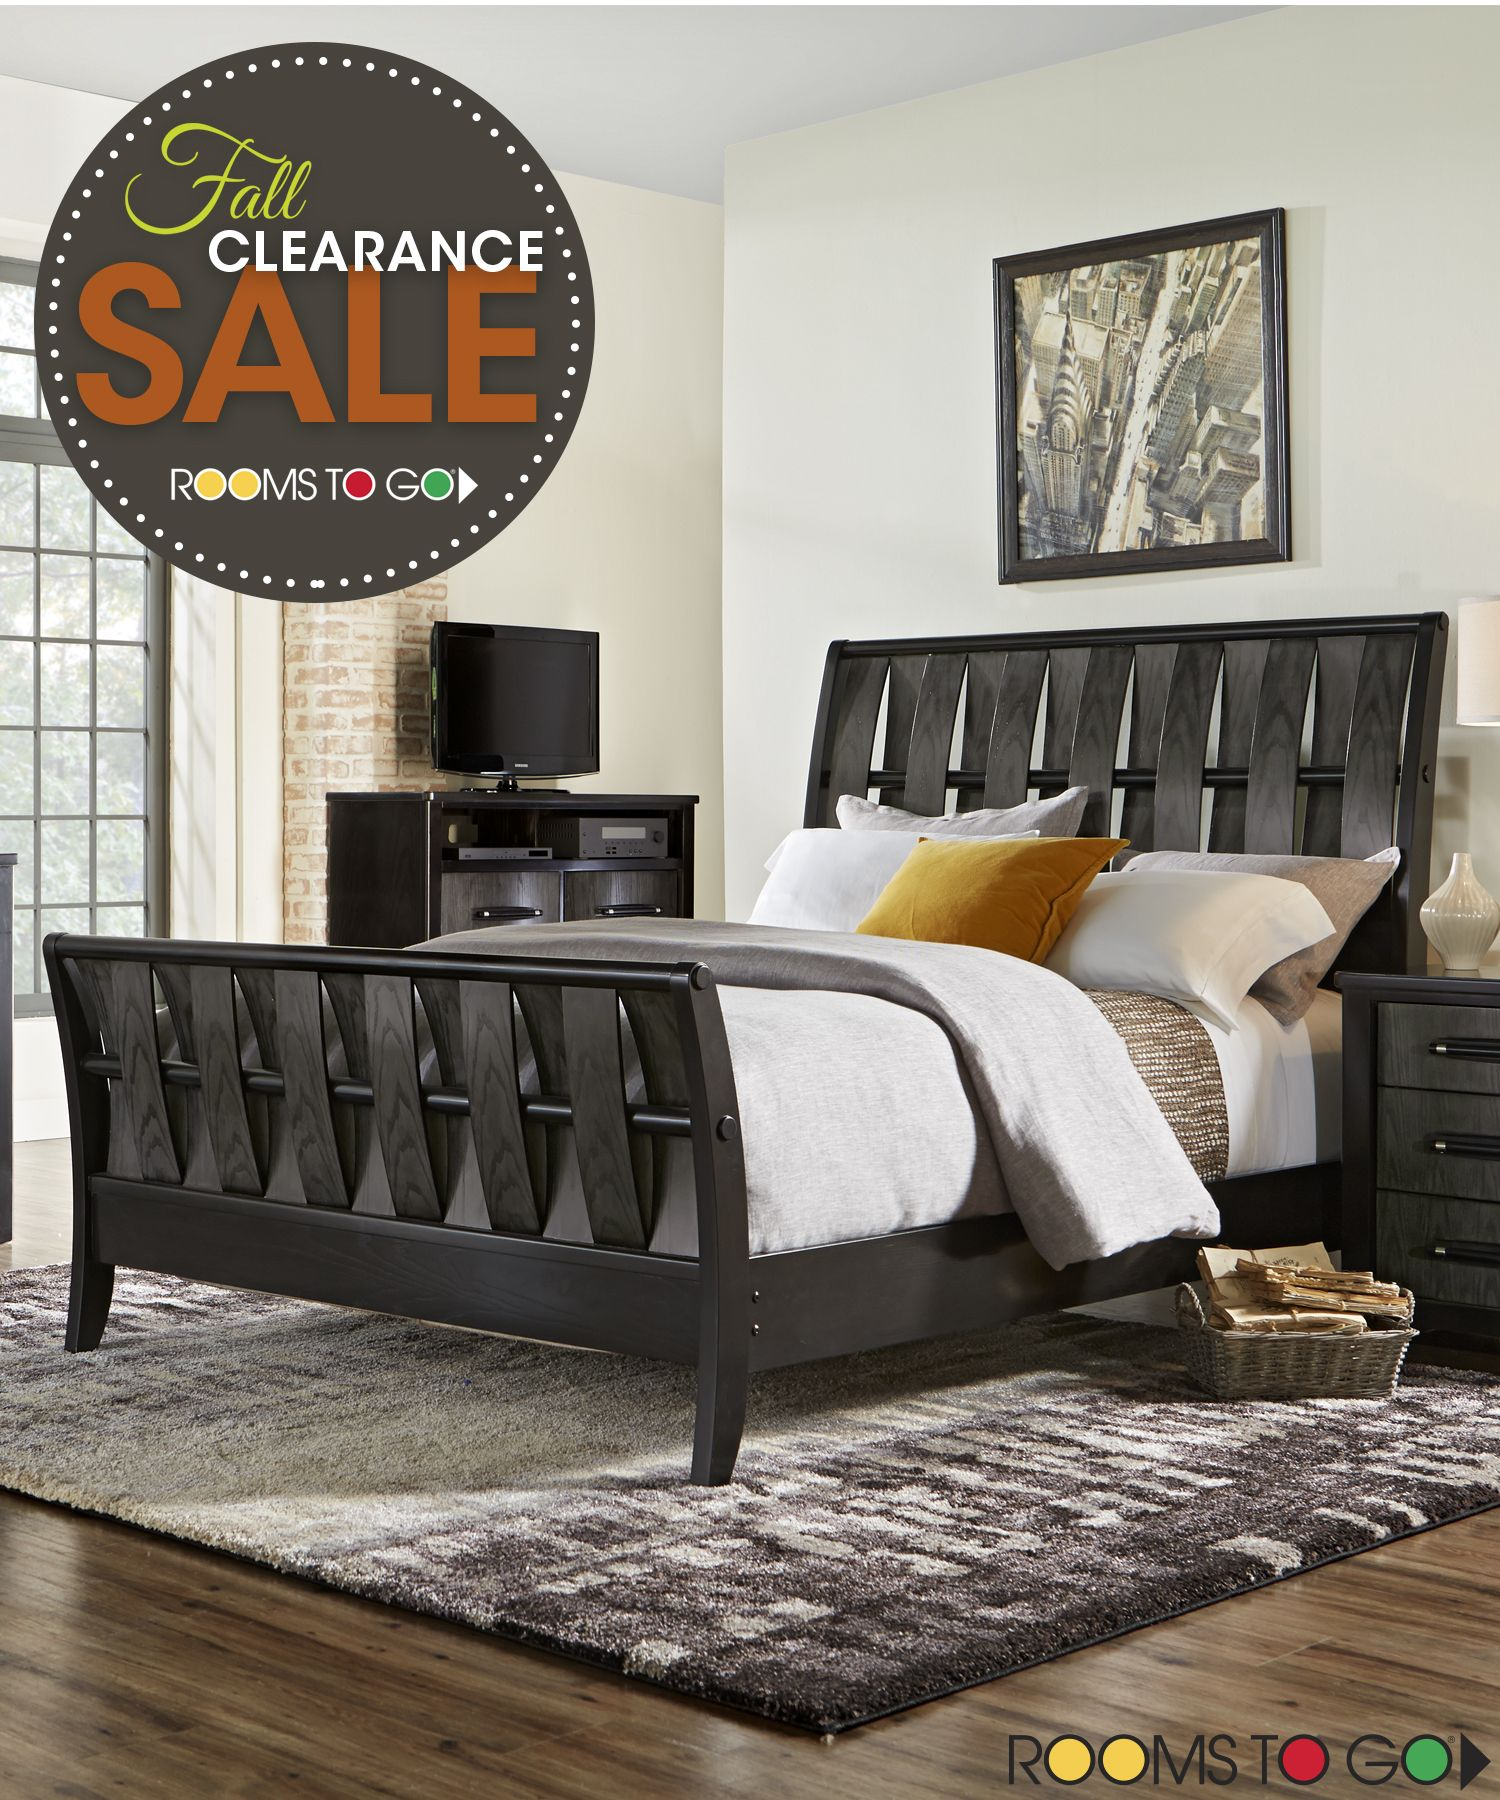 Visit Rooms To Go Now During Our Fall Clearance Sales Event And